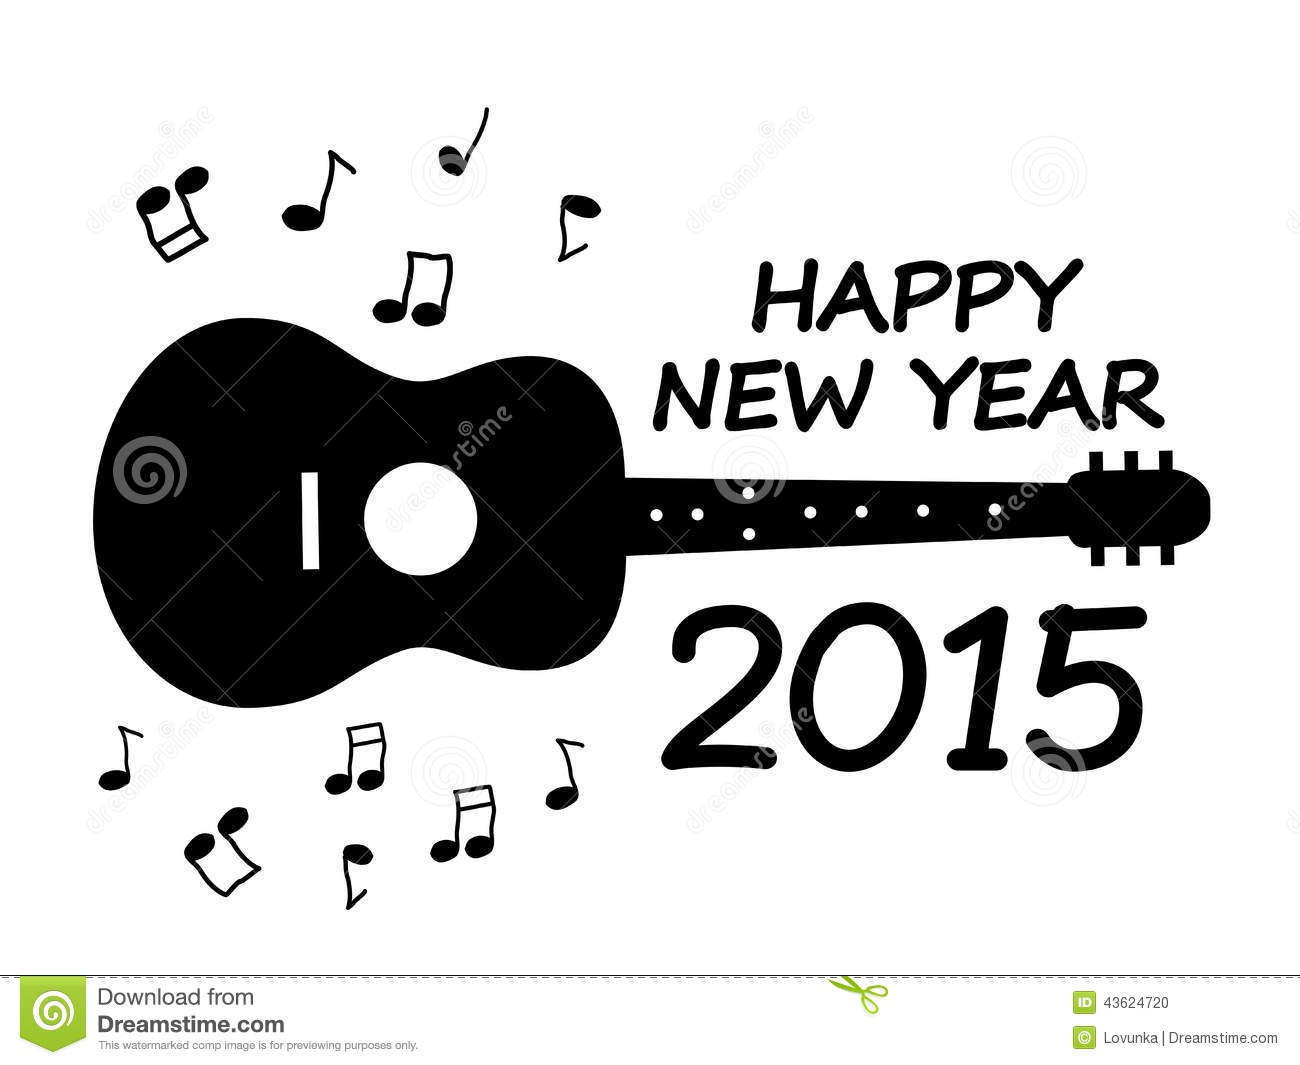 Happy New Year stock vector. Illustration of group, design - 43624720